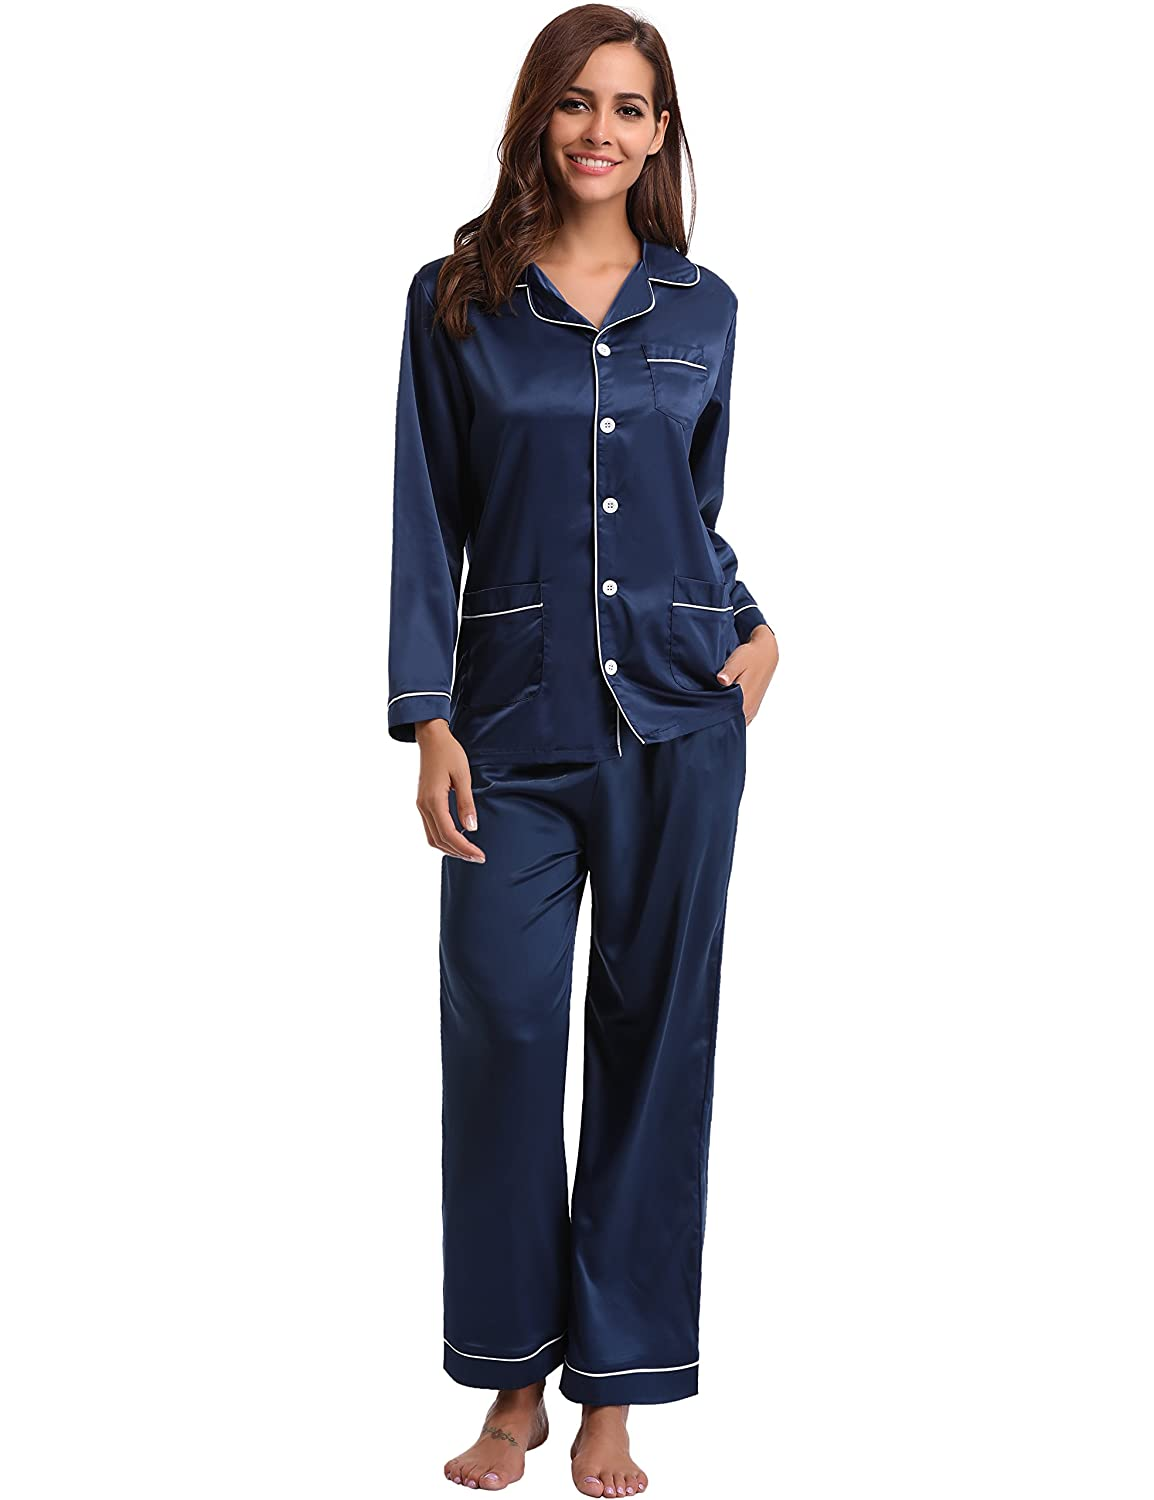 Aibrou Women's Pajamas, Satin Nightwear Set, Long Sleeved and Long Button-Down Sleepwear Loungewear for All Seasons Aibrou Women's Pajamas AM000047